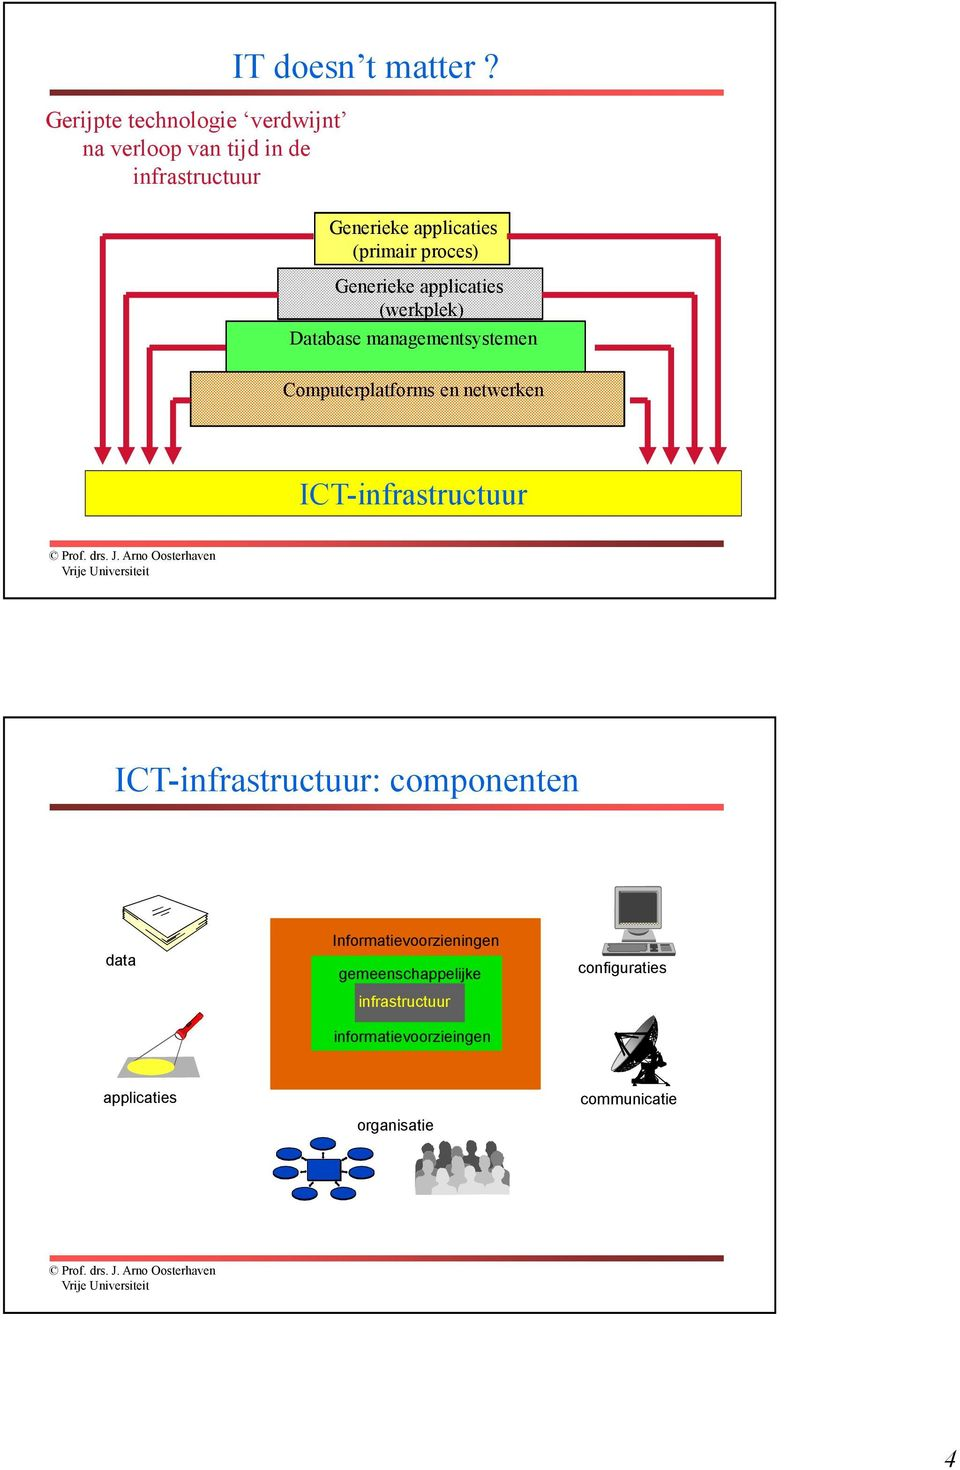 Computerplatforms en netwerken ICT-infrastructuur ICT-infrastructuur: componenten data